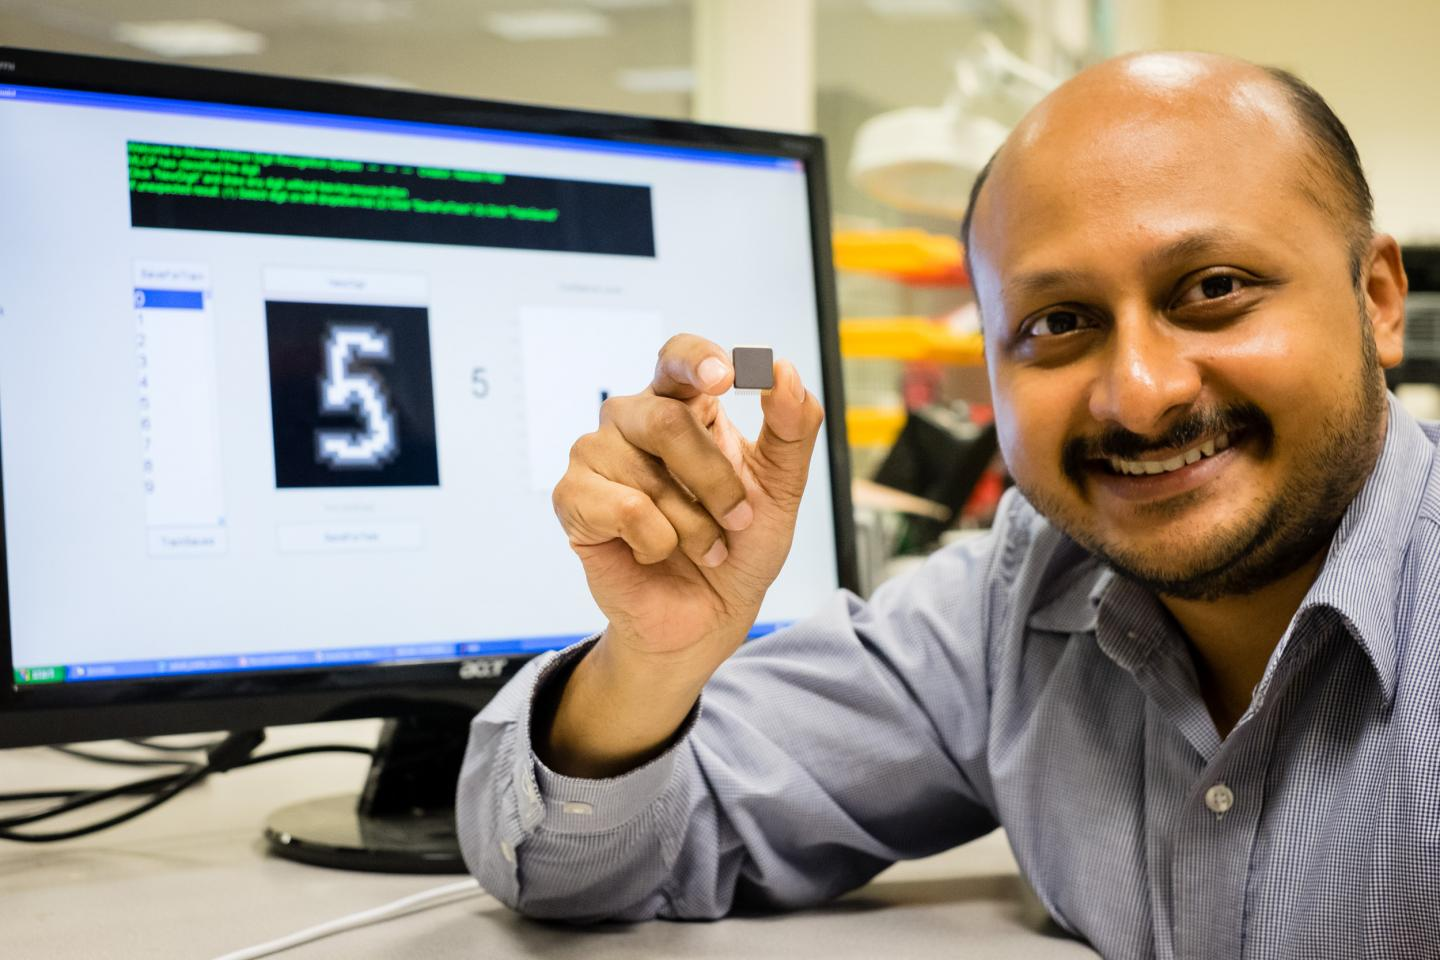 NTU Asst Prof Arindam Basu is holding his low-powered smart chip.NTU Asst Prof Arindam Basu is holding his low-powered smart chip. Image courtesy of NTU Singapore